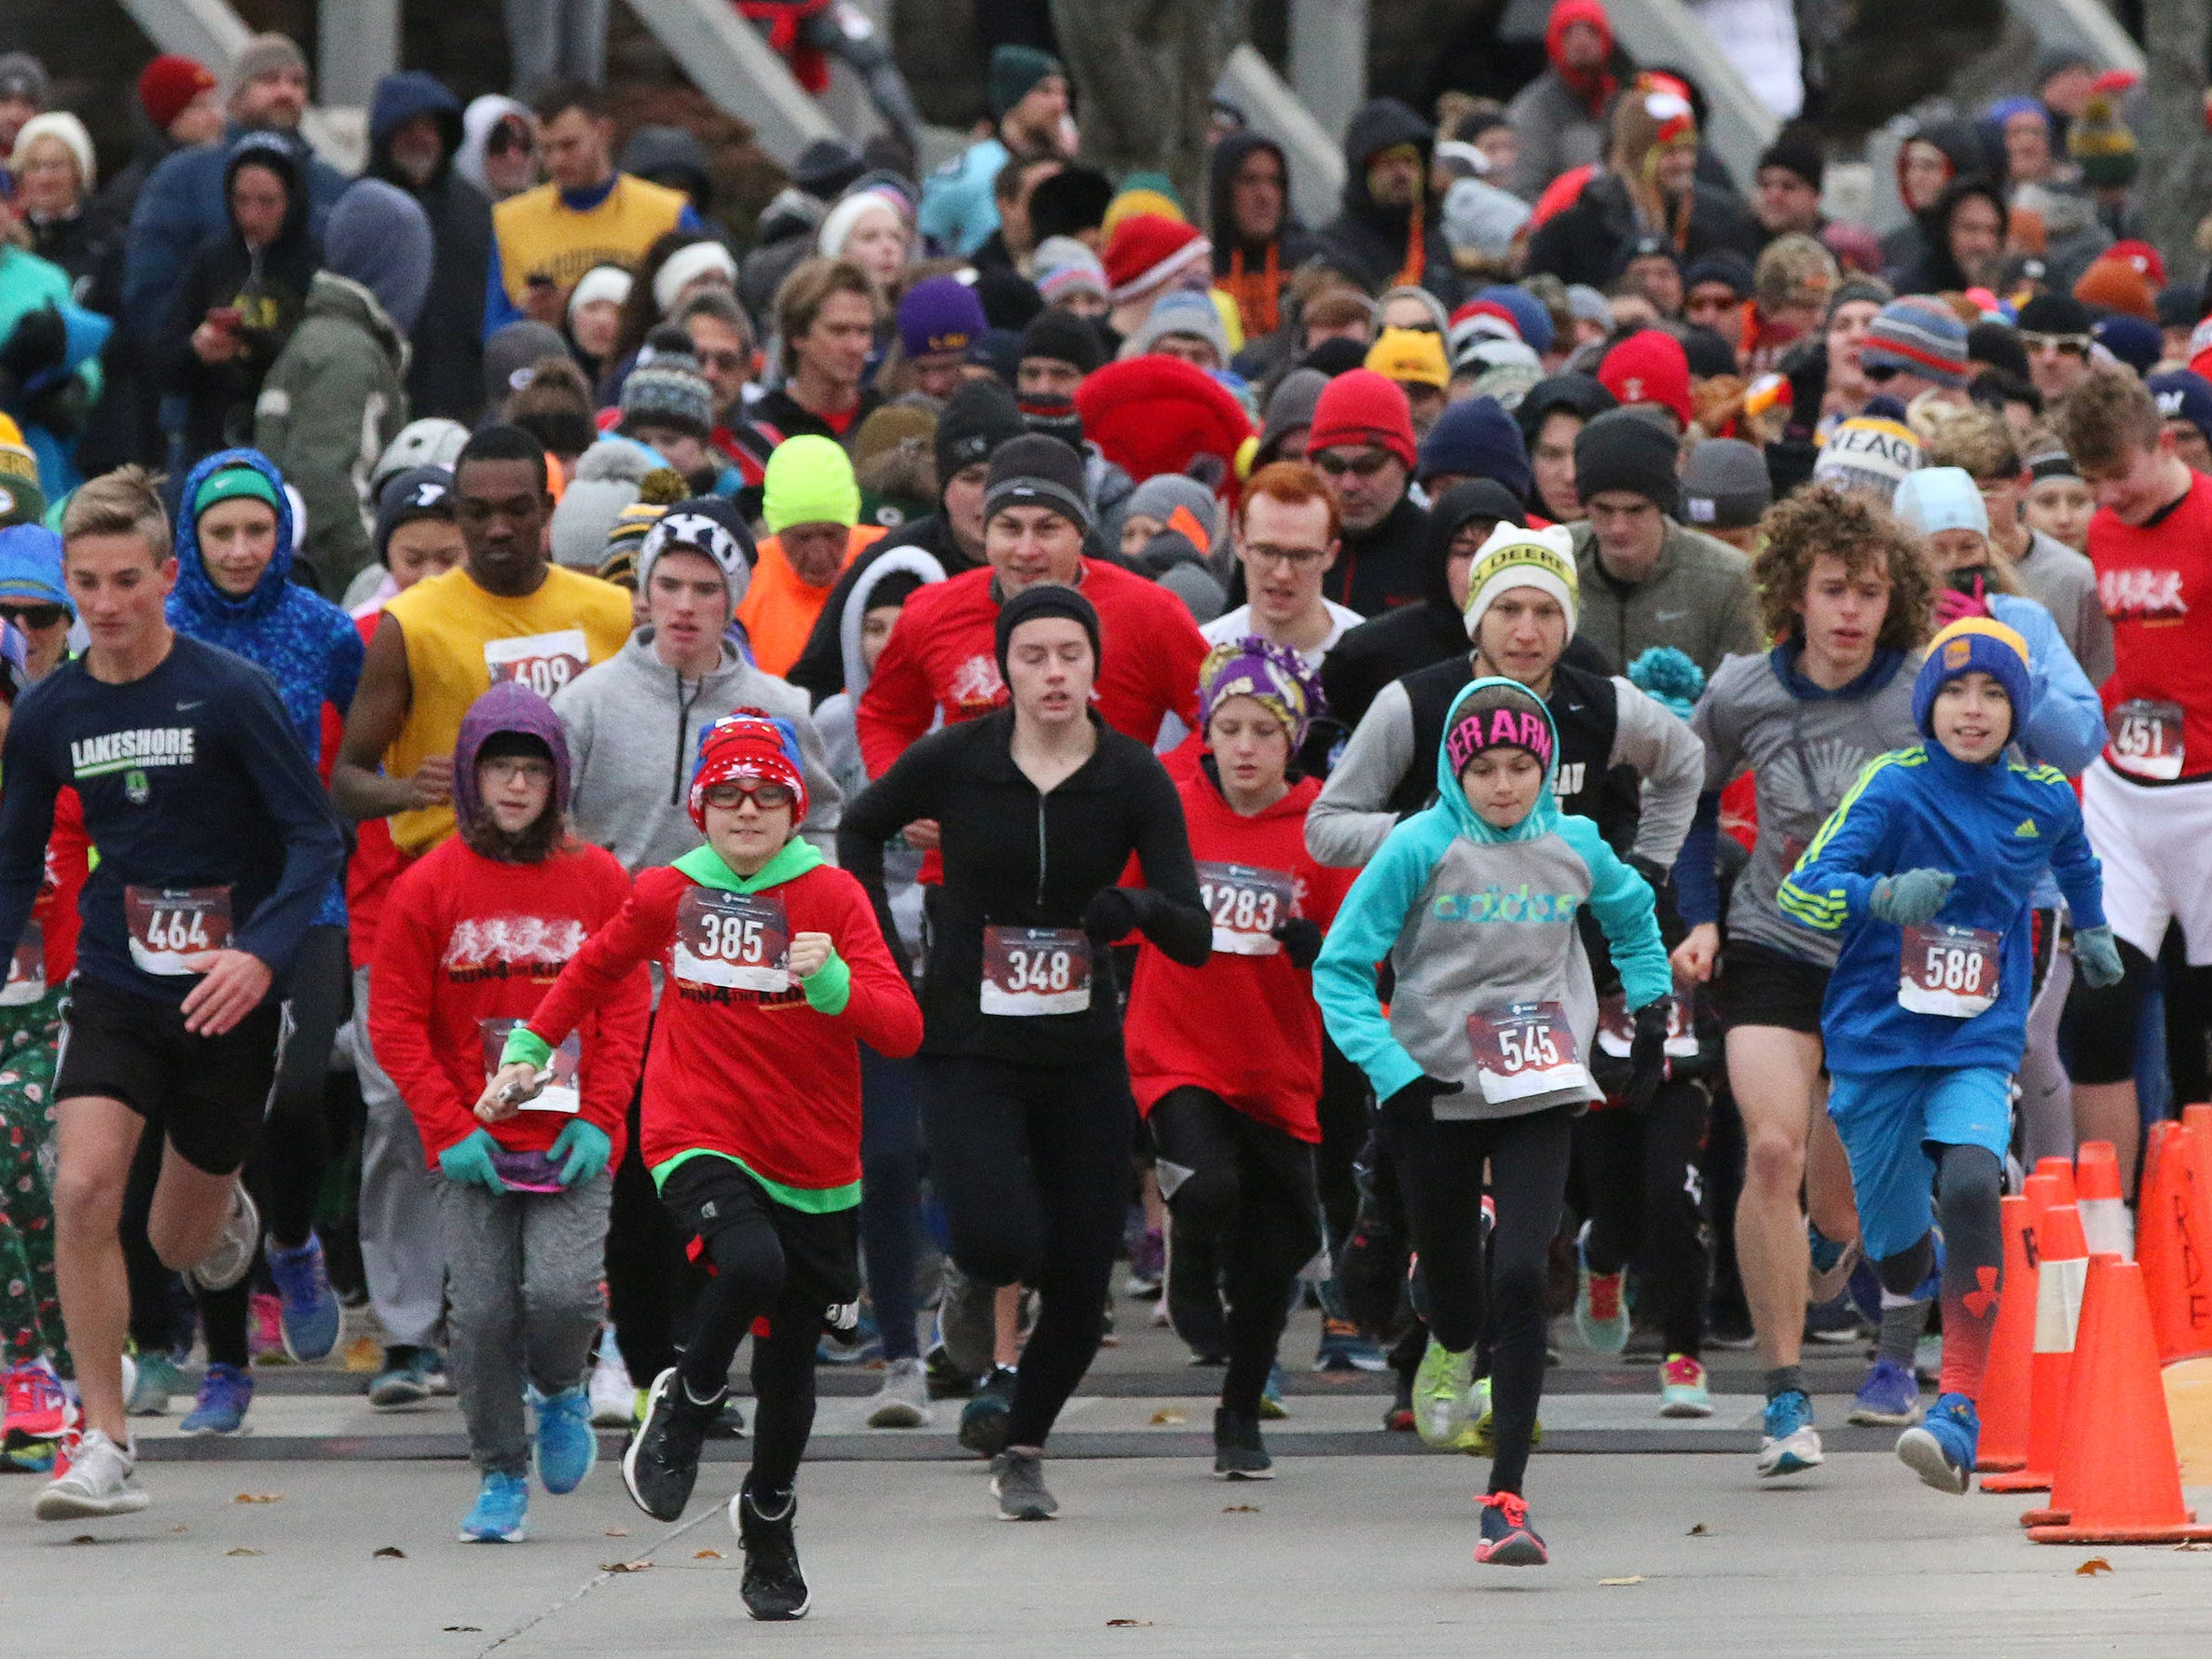 Runners begin the Doug Opel Run for the Kids, Thursday, November 22, 2018, in Sheboygan, Wis.